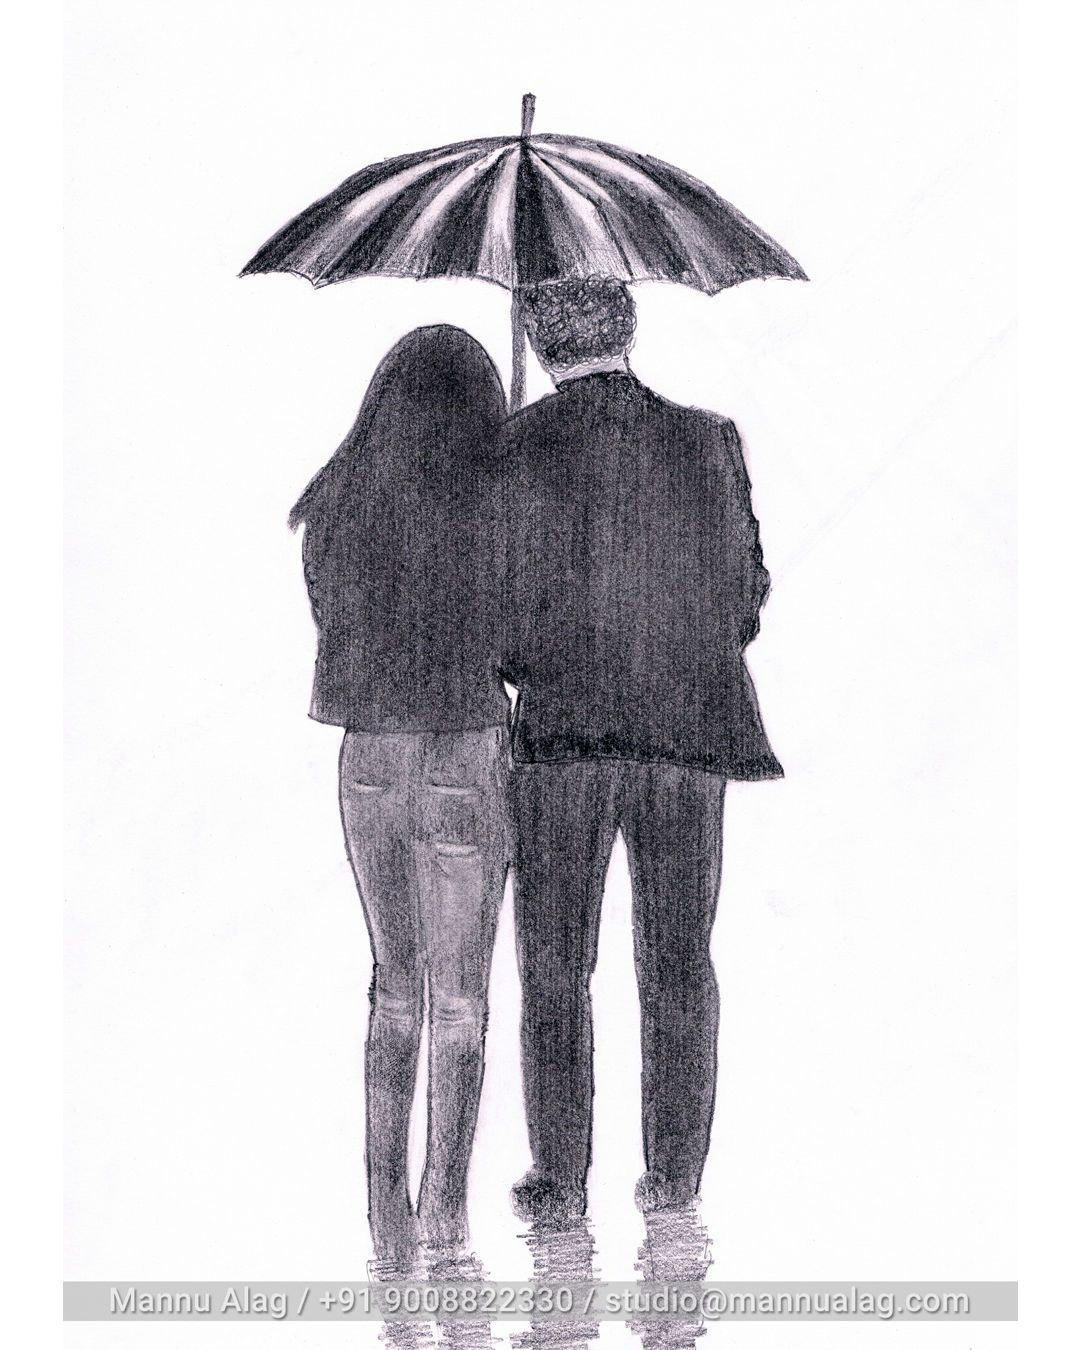 Wip sketch shadesofgray couples rain night blackandwhite pencil art mannualag